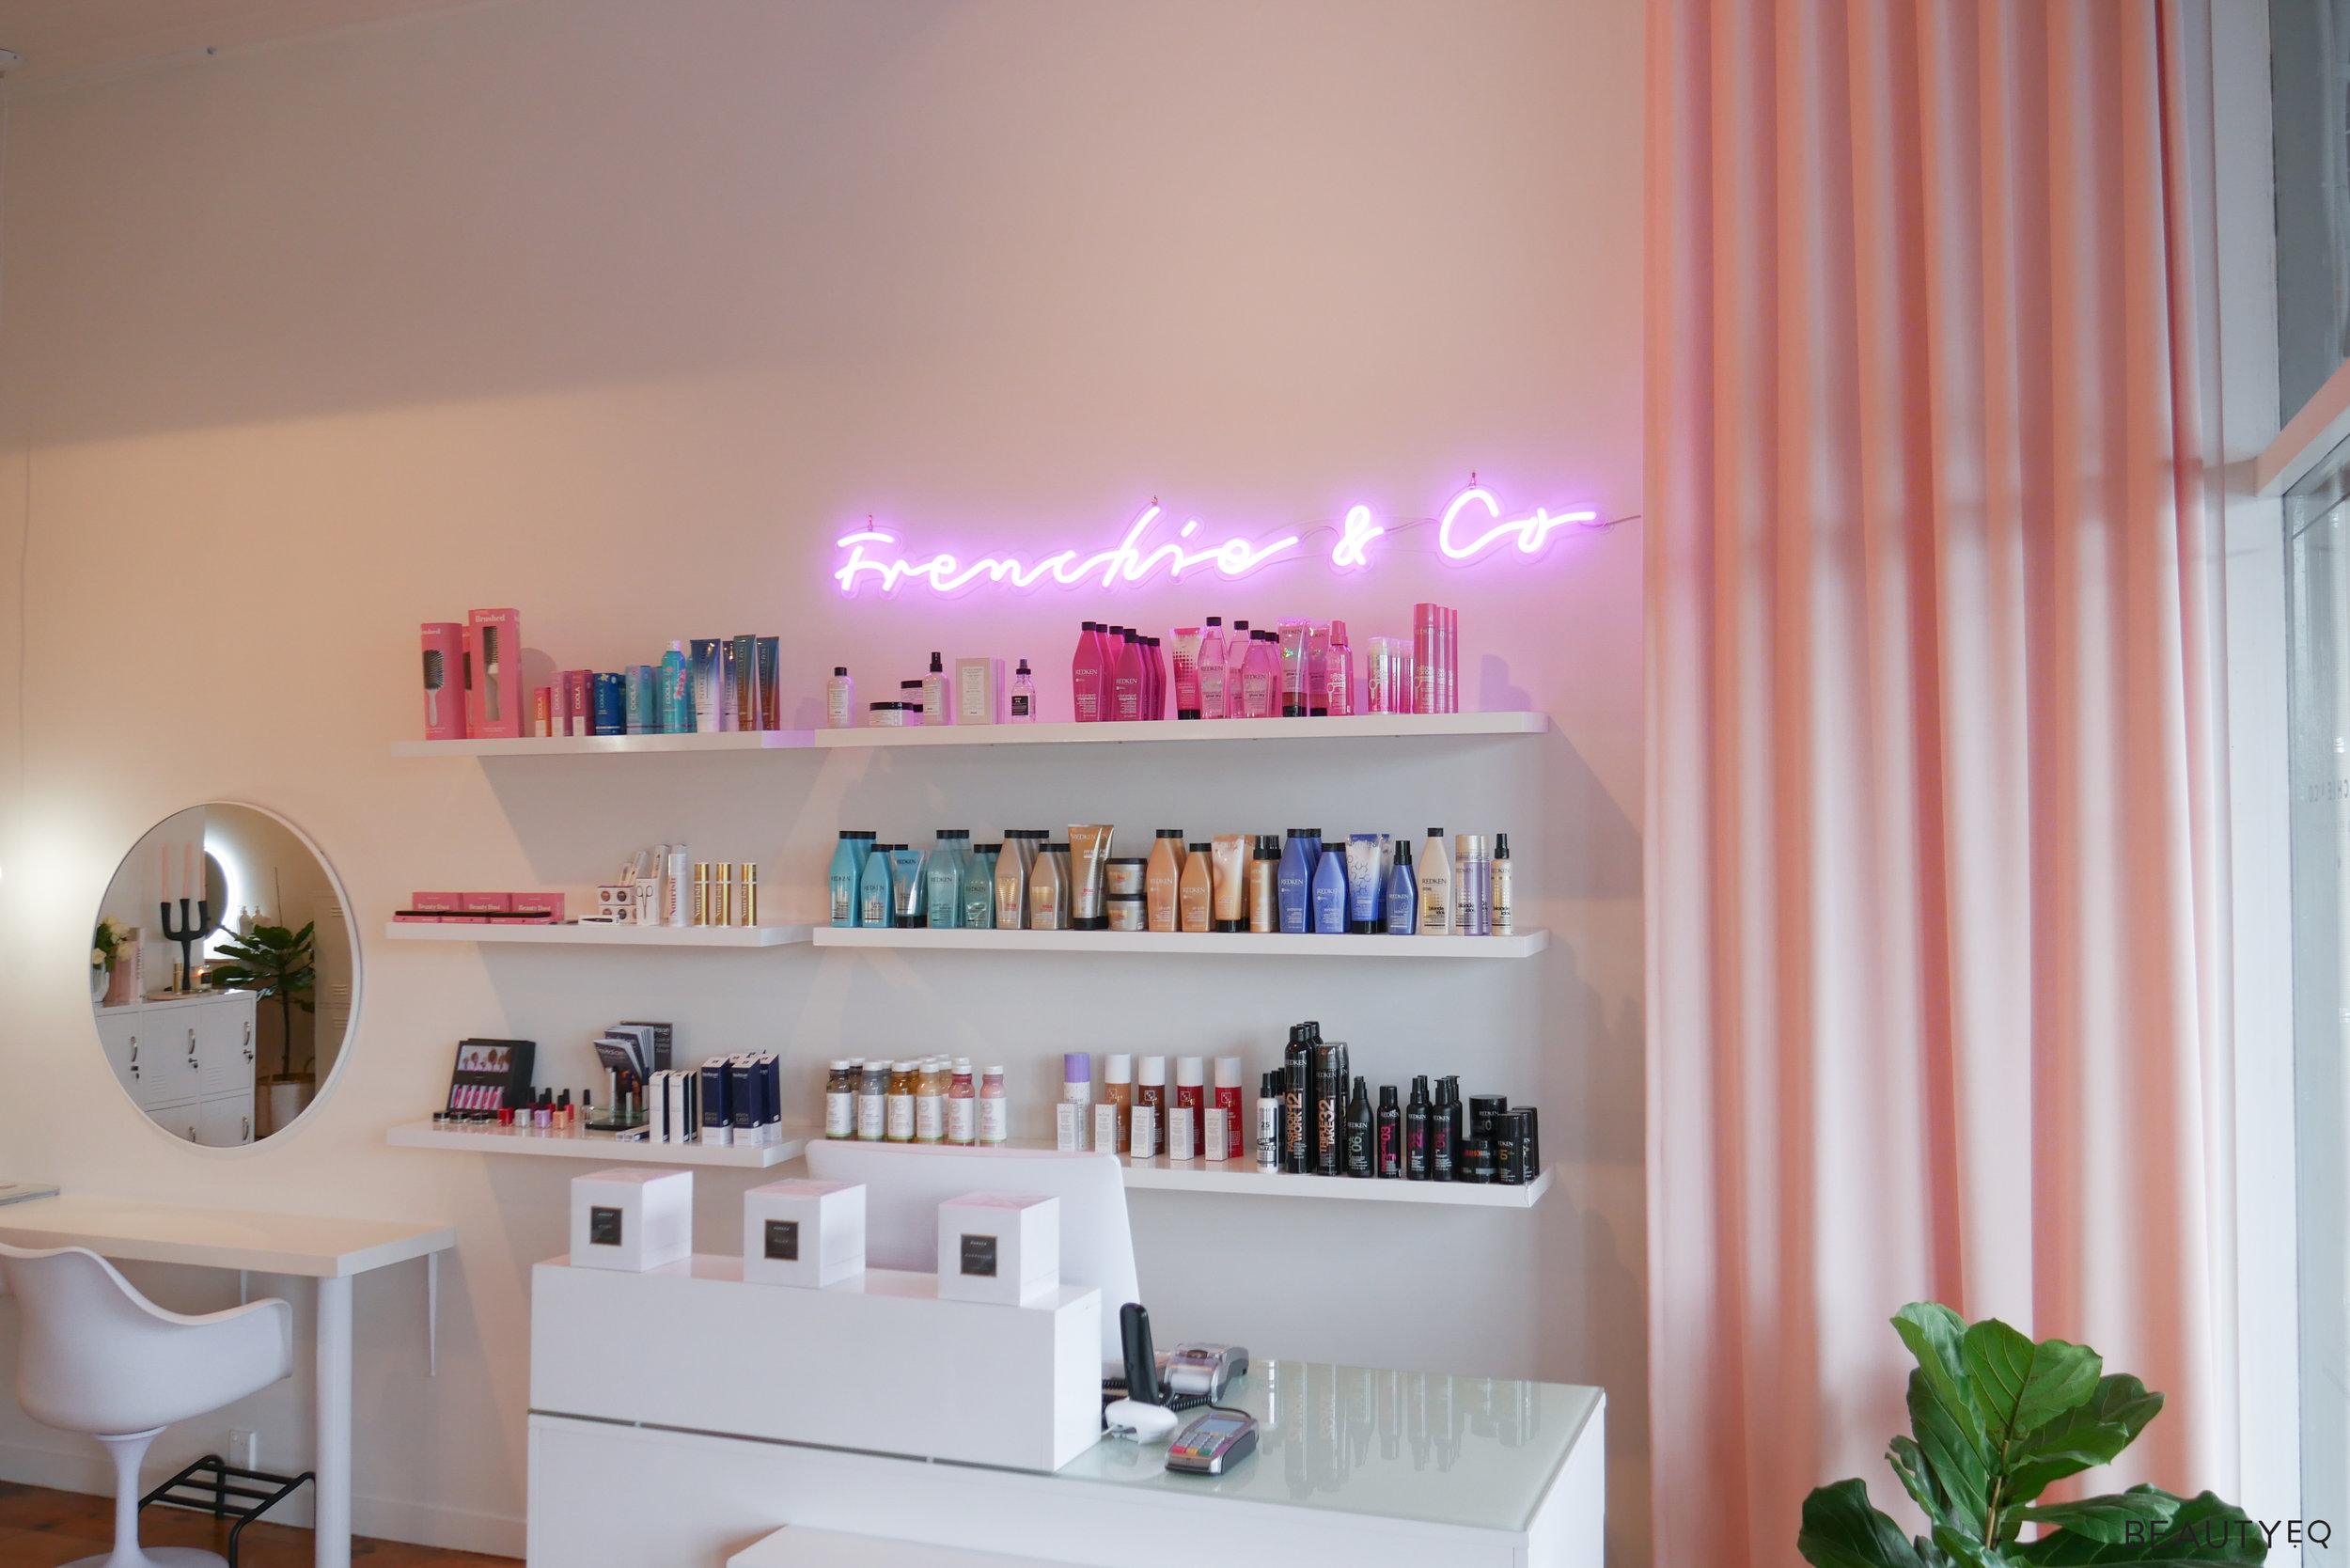 A beauty salon with various beauty products lines up on three different shelves and a neon light above them saying 'Frenchie & Co'